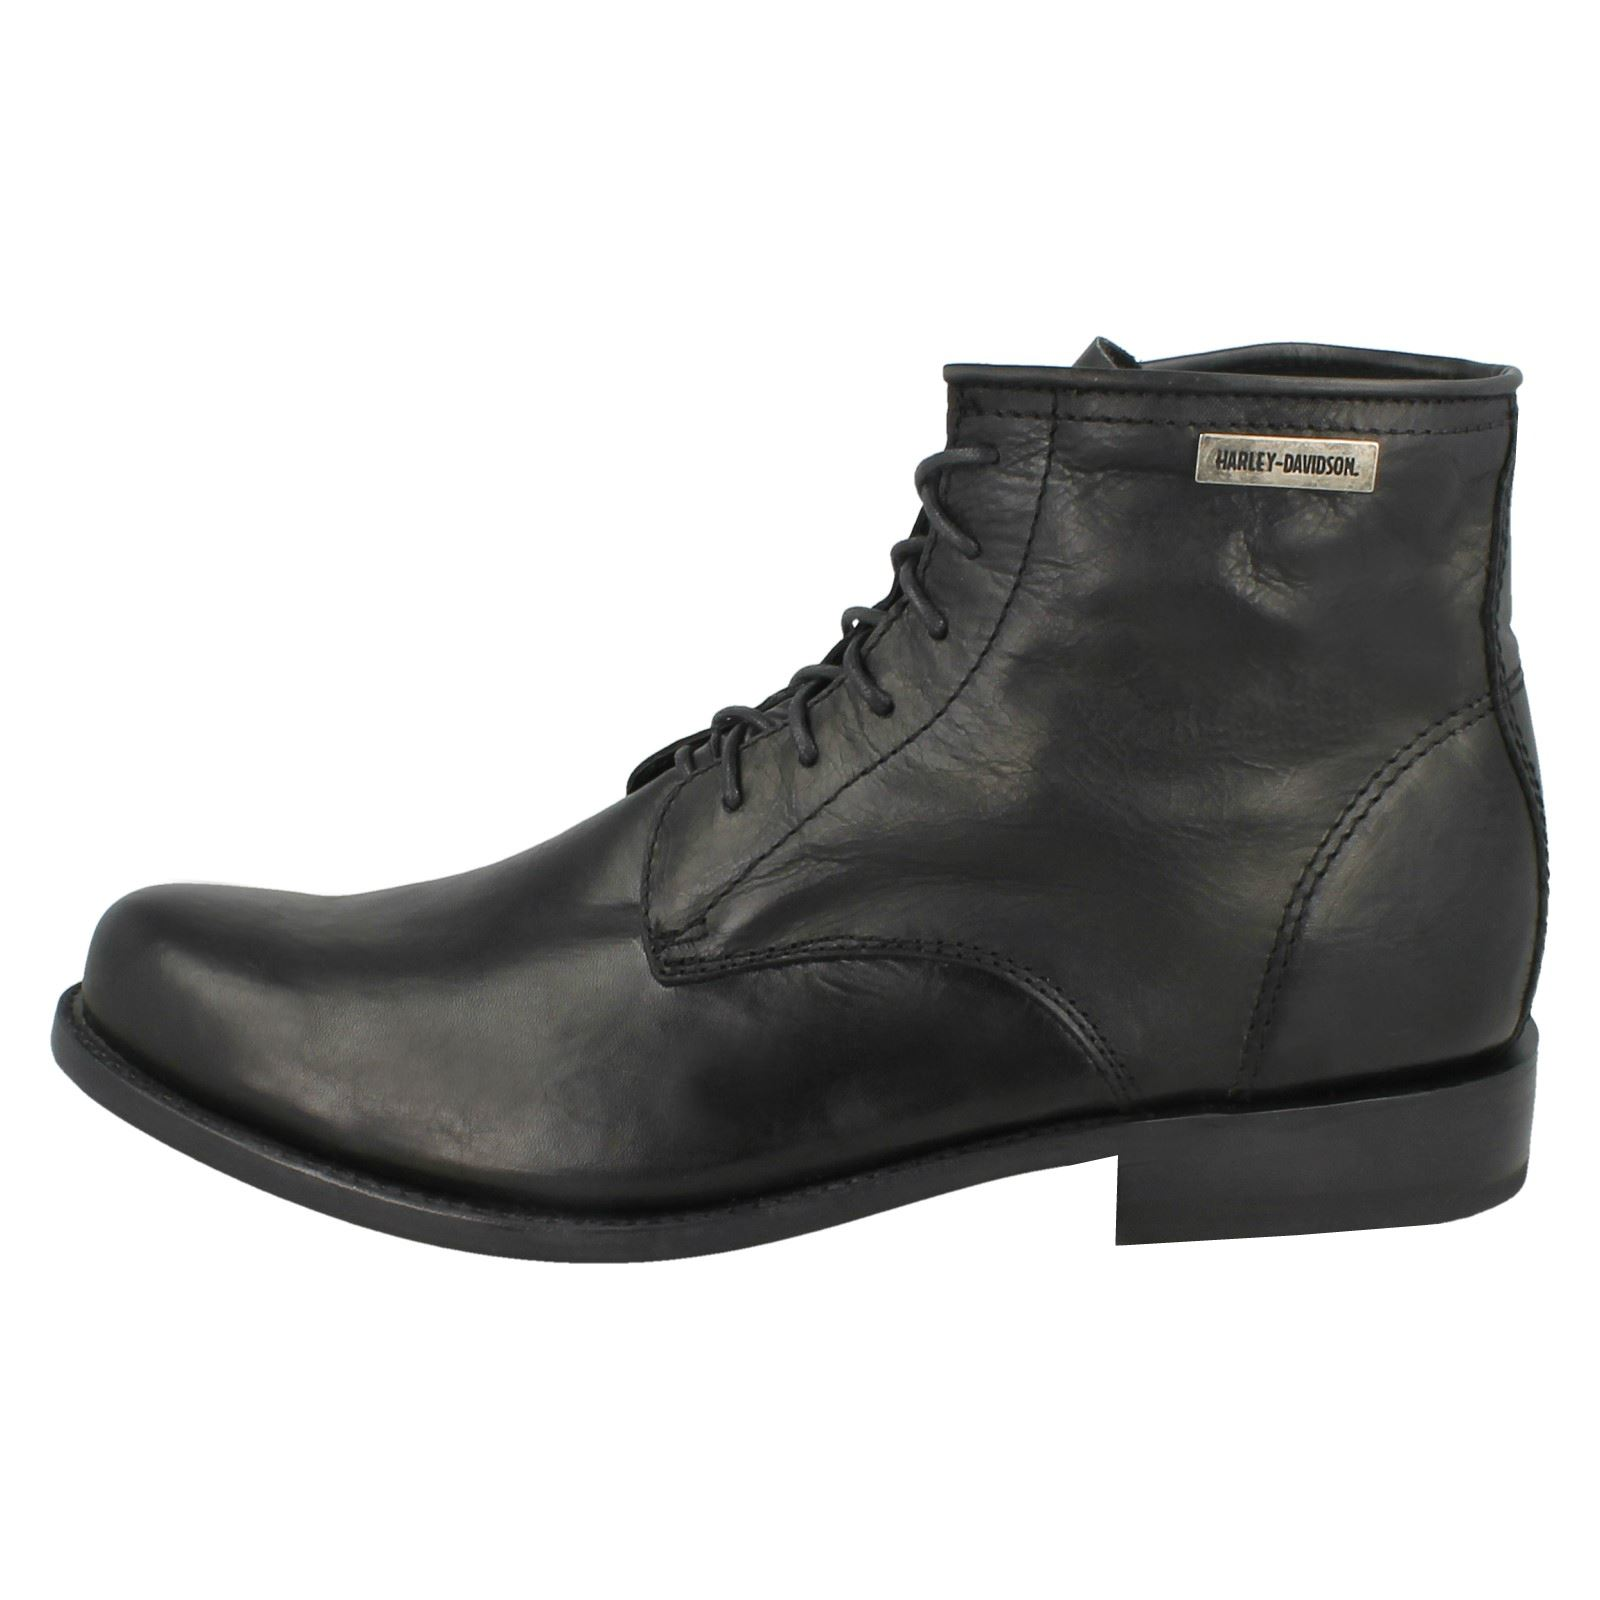 Mens Stiefel Harley Davidson Casual Ankle Stiefel Mens Tarrson D92104 707492